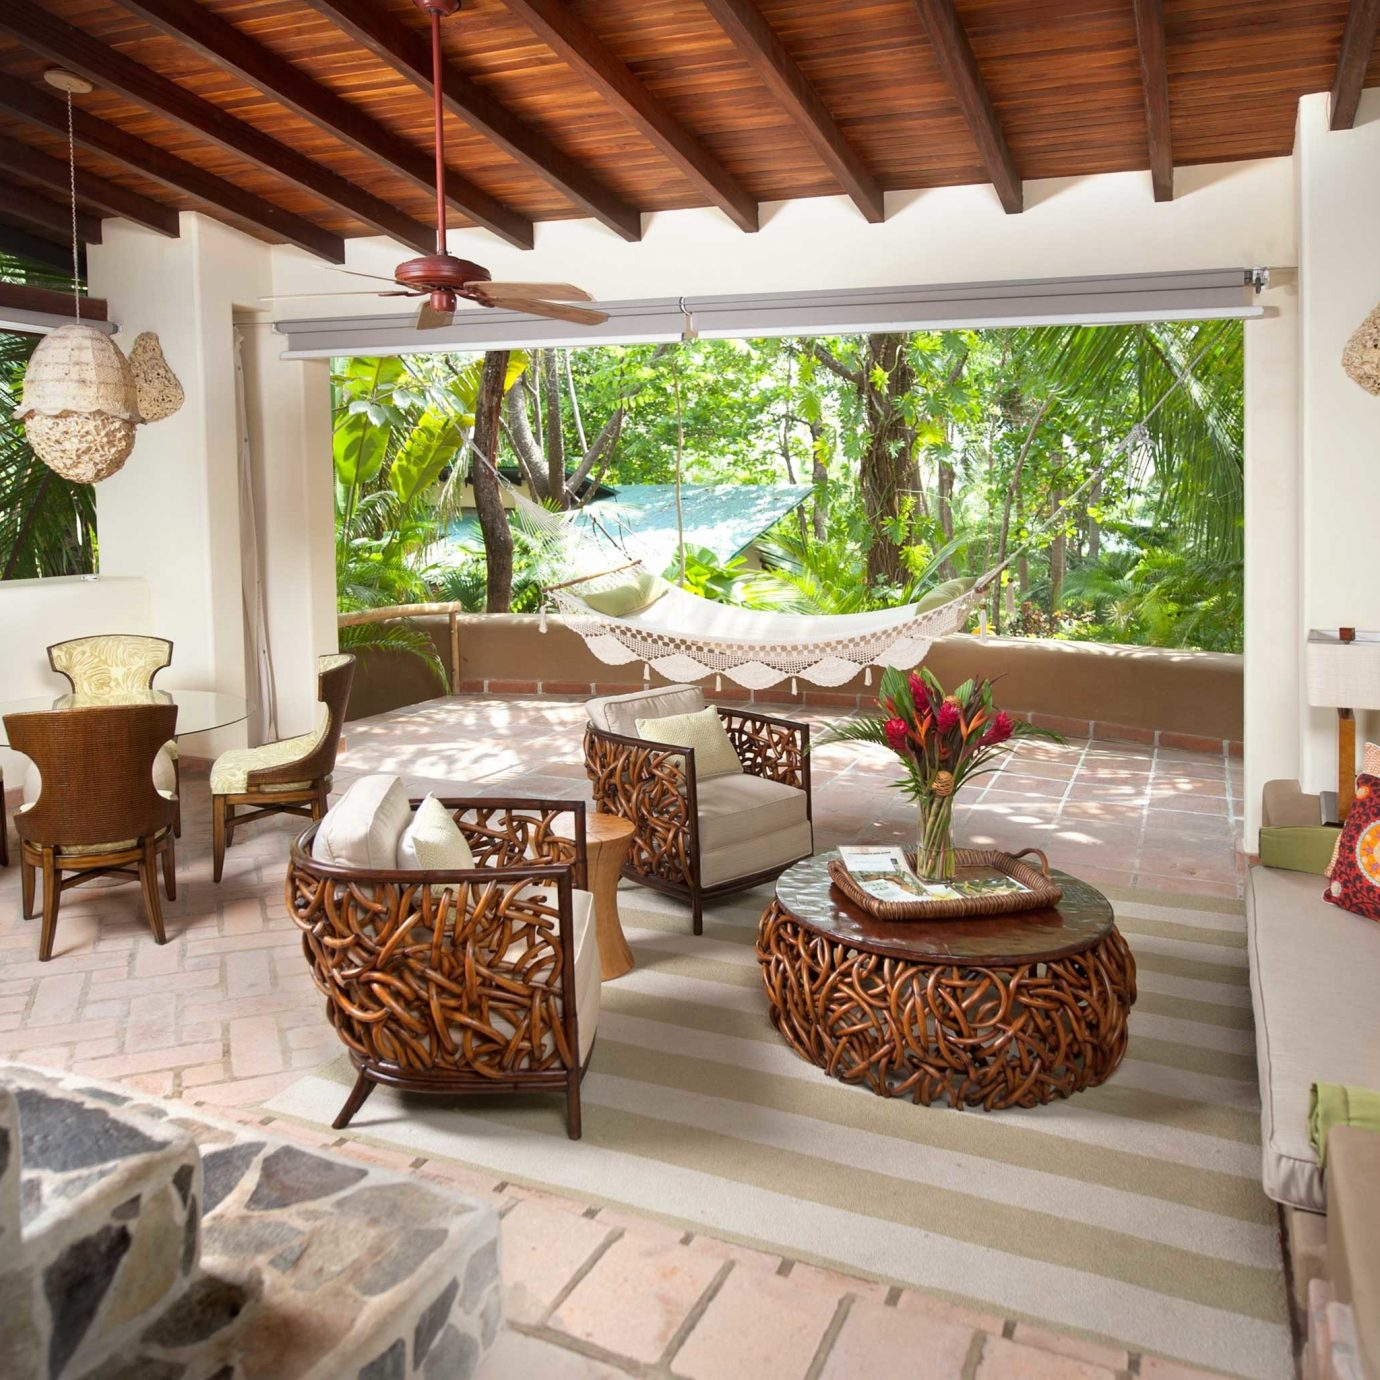 Hotels Lounge Luxury Tropical property Villa Resort living room cottage home porch outdoor structure hacienda backyard farmhouse